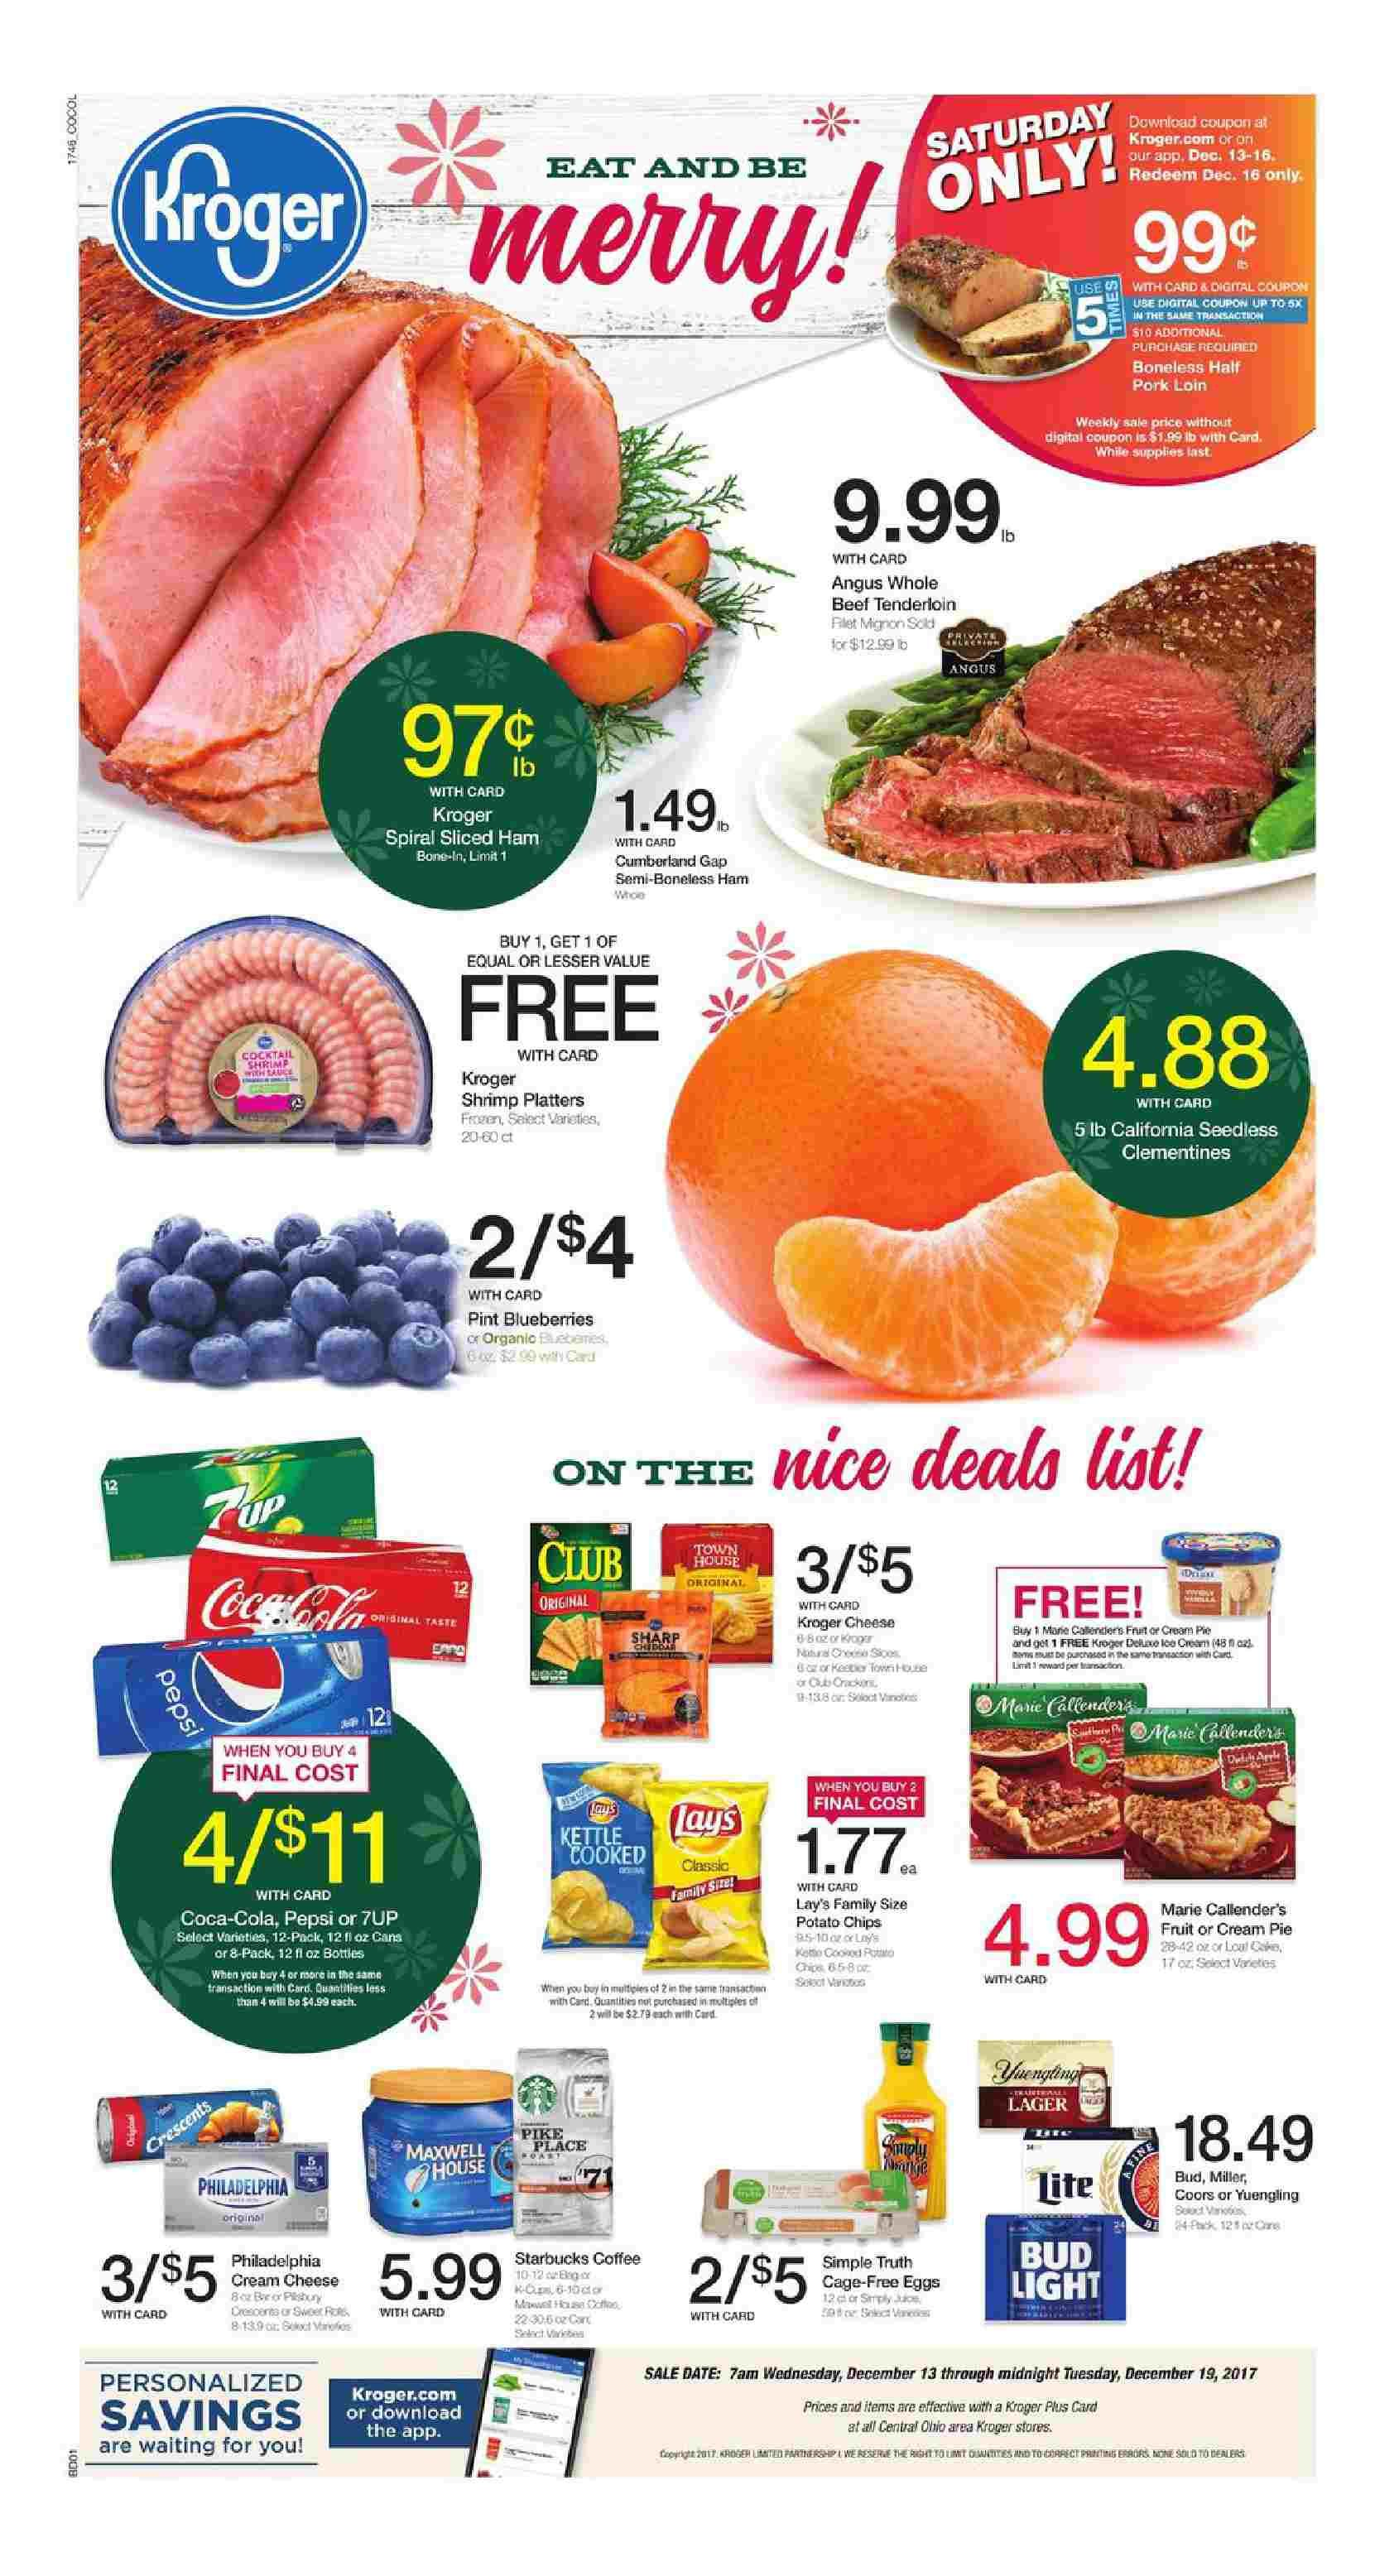 Kroger Weekly Ad December 13 – 19, 2017 – Grocery, Kroger